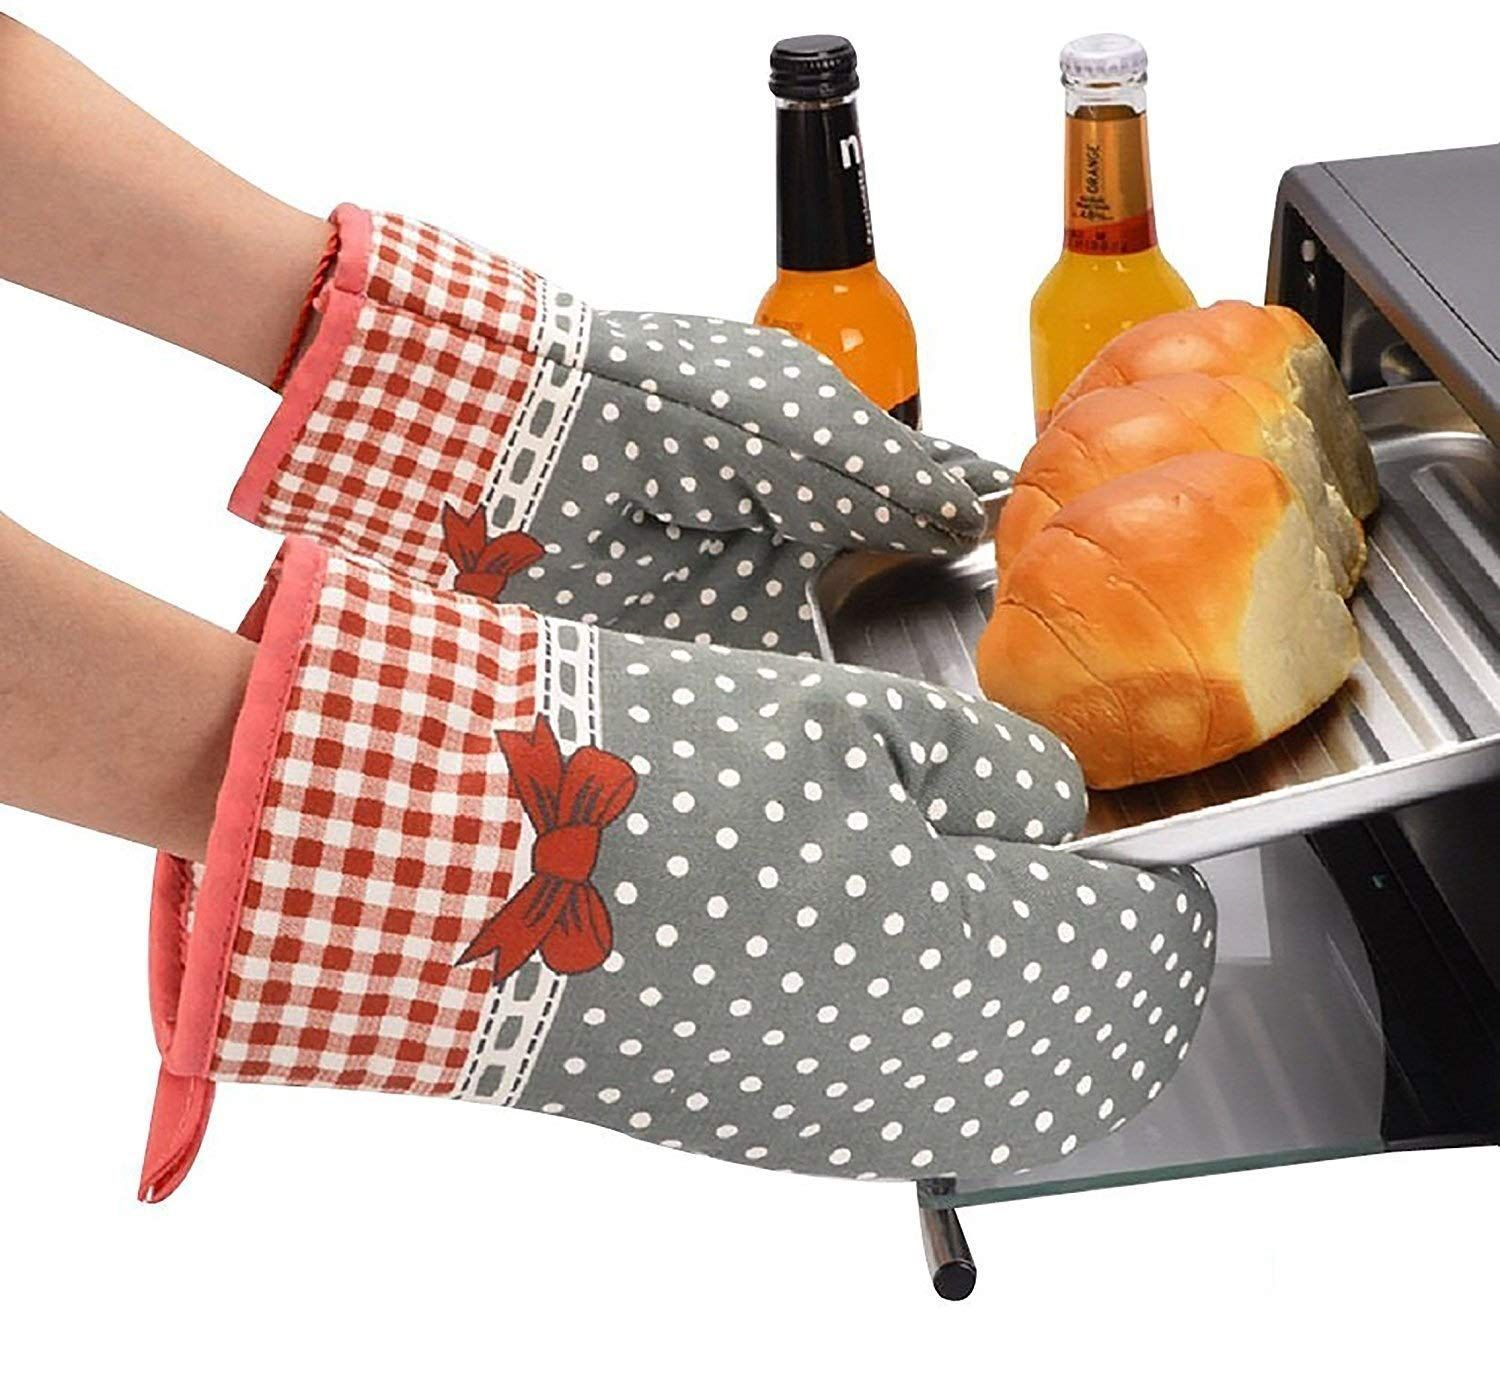 Set Of Two Oven Mitts Heat Resistant Cotton Kitchen Pot Holder